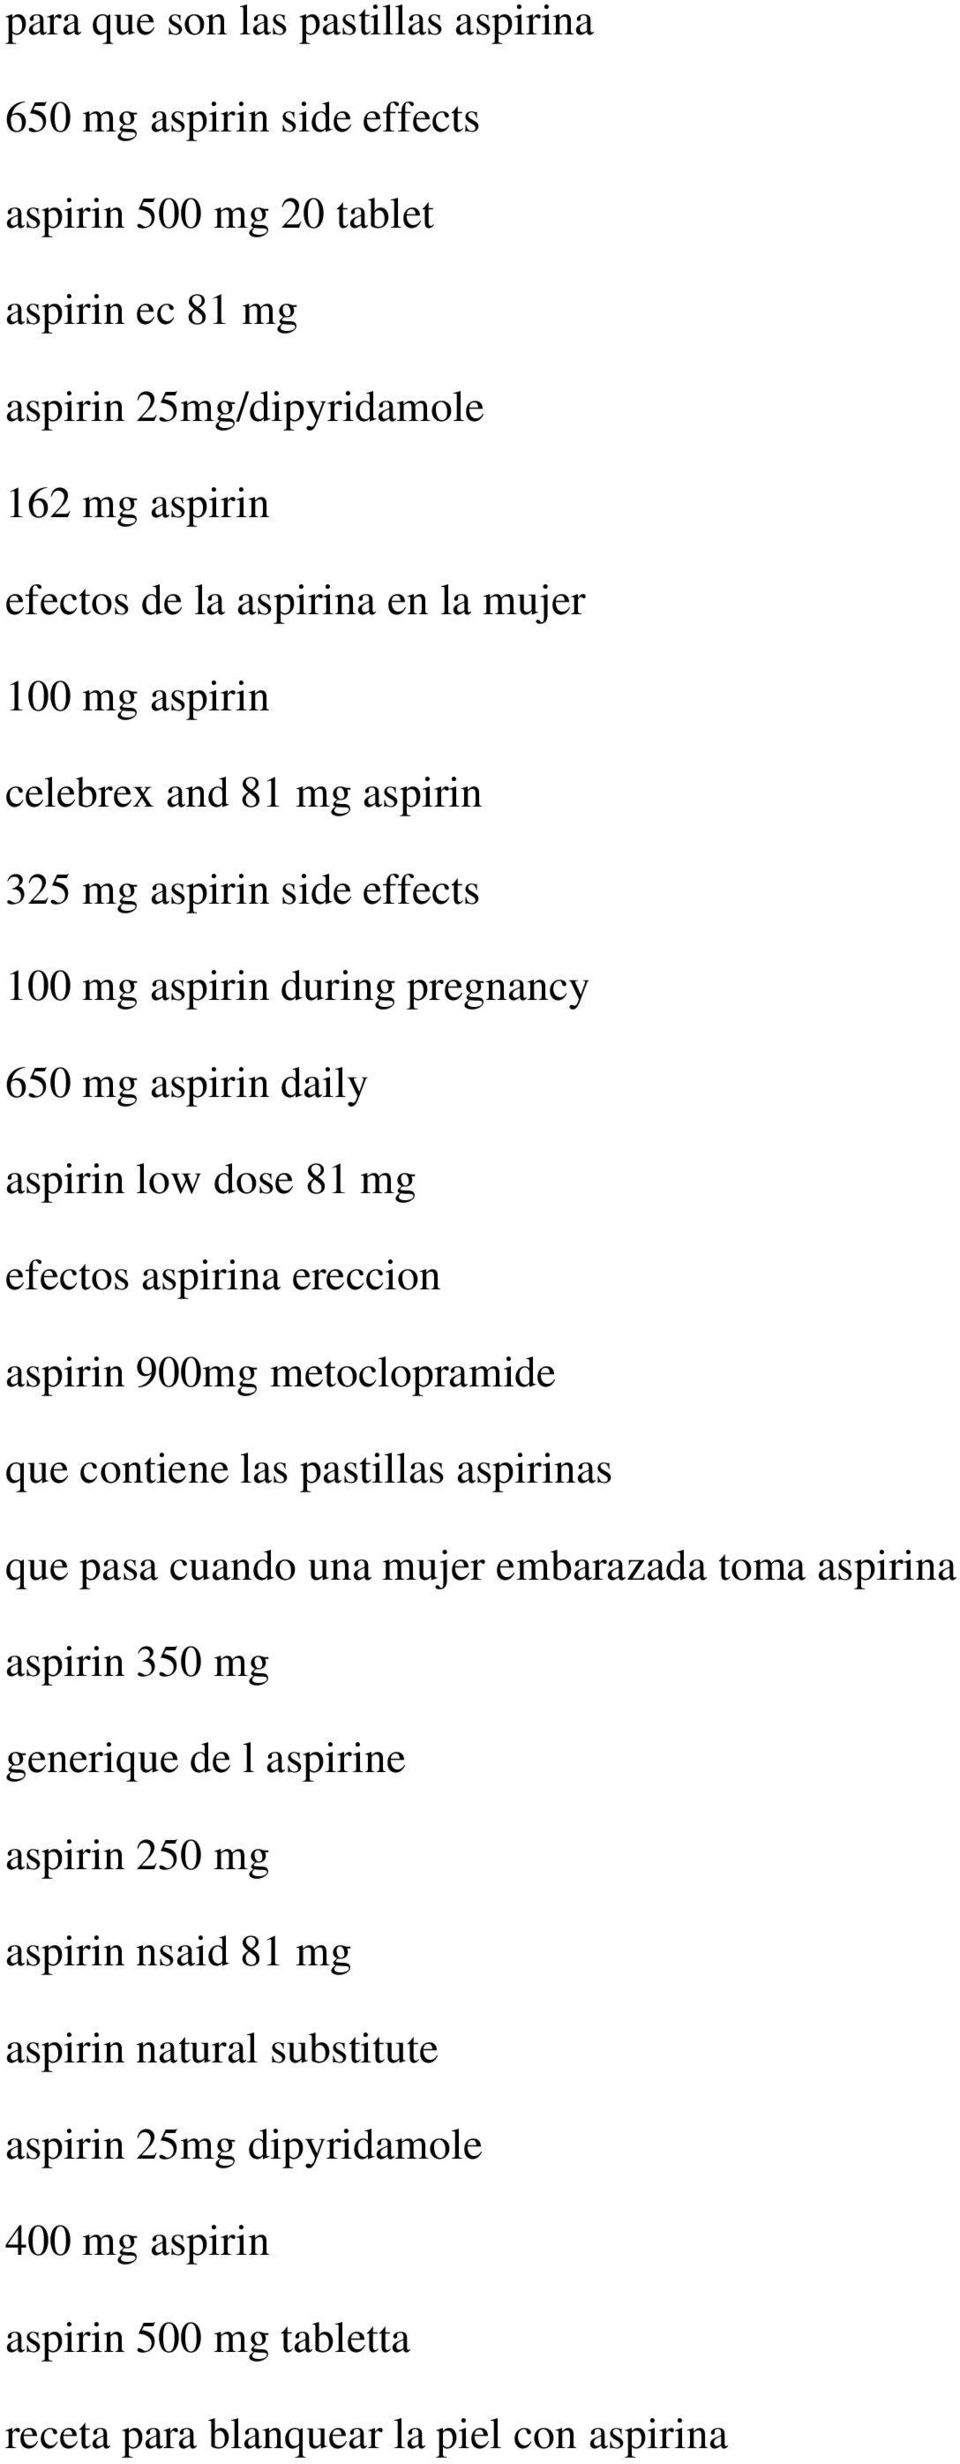 bystolic 10mg price without insurance